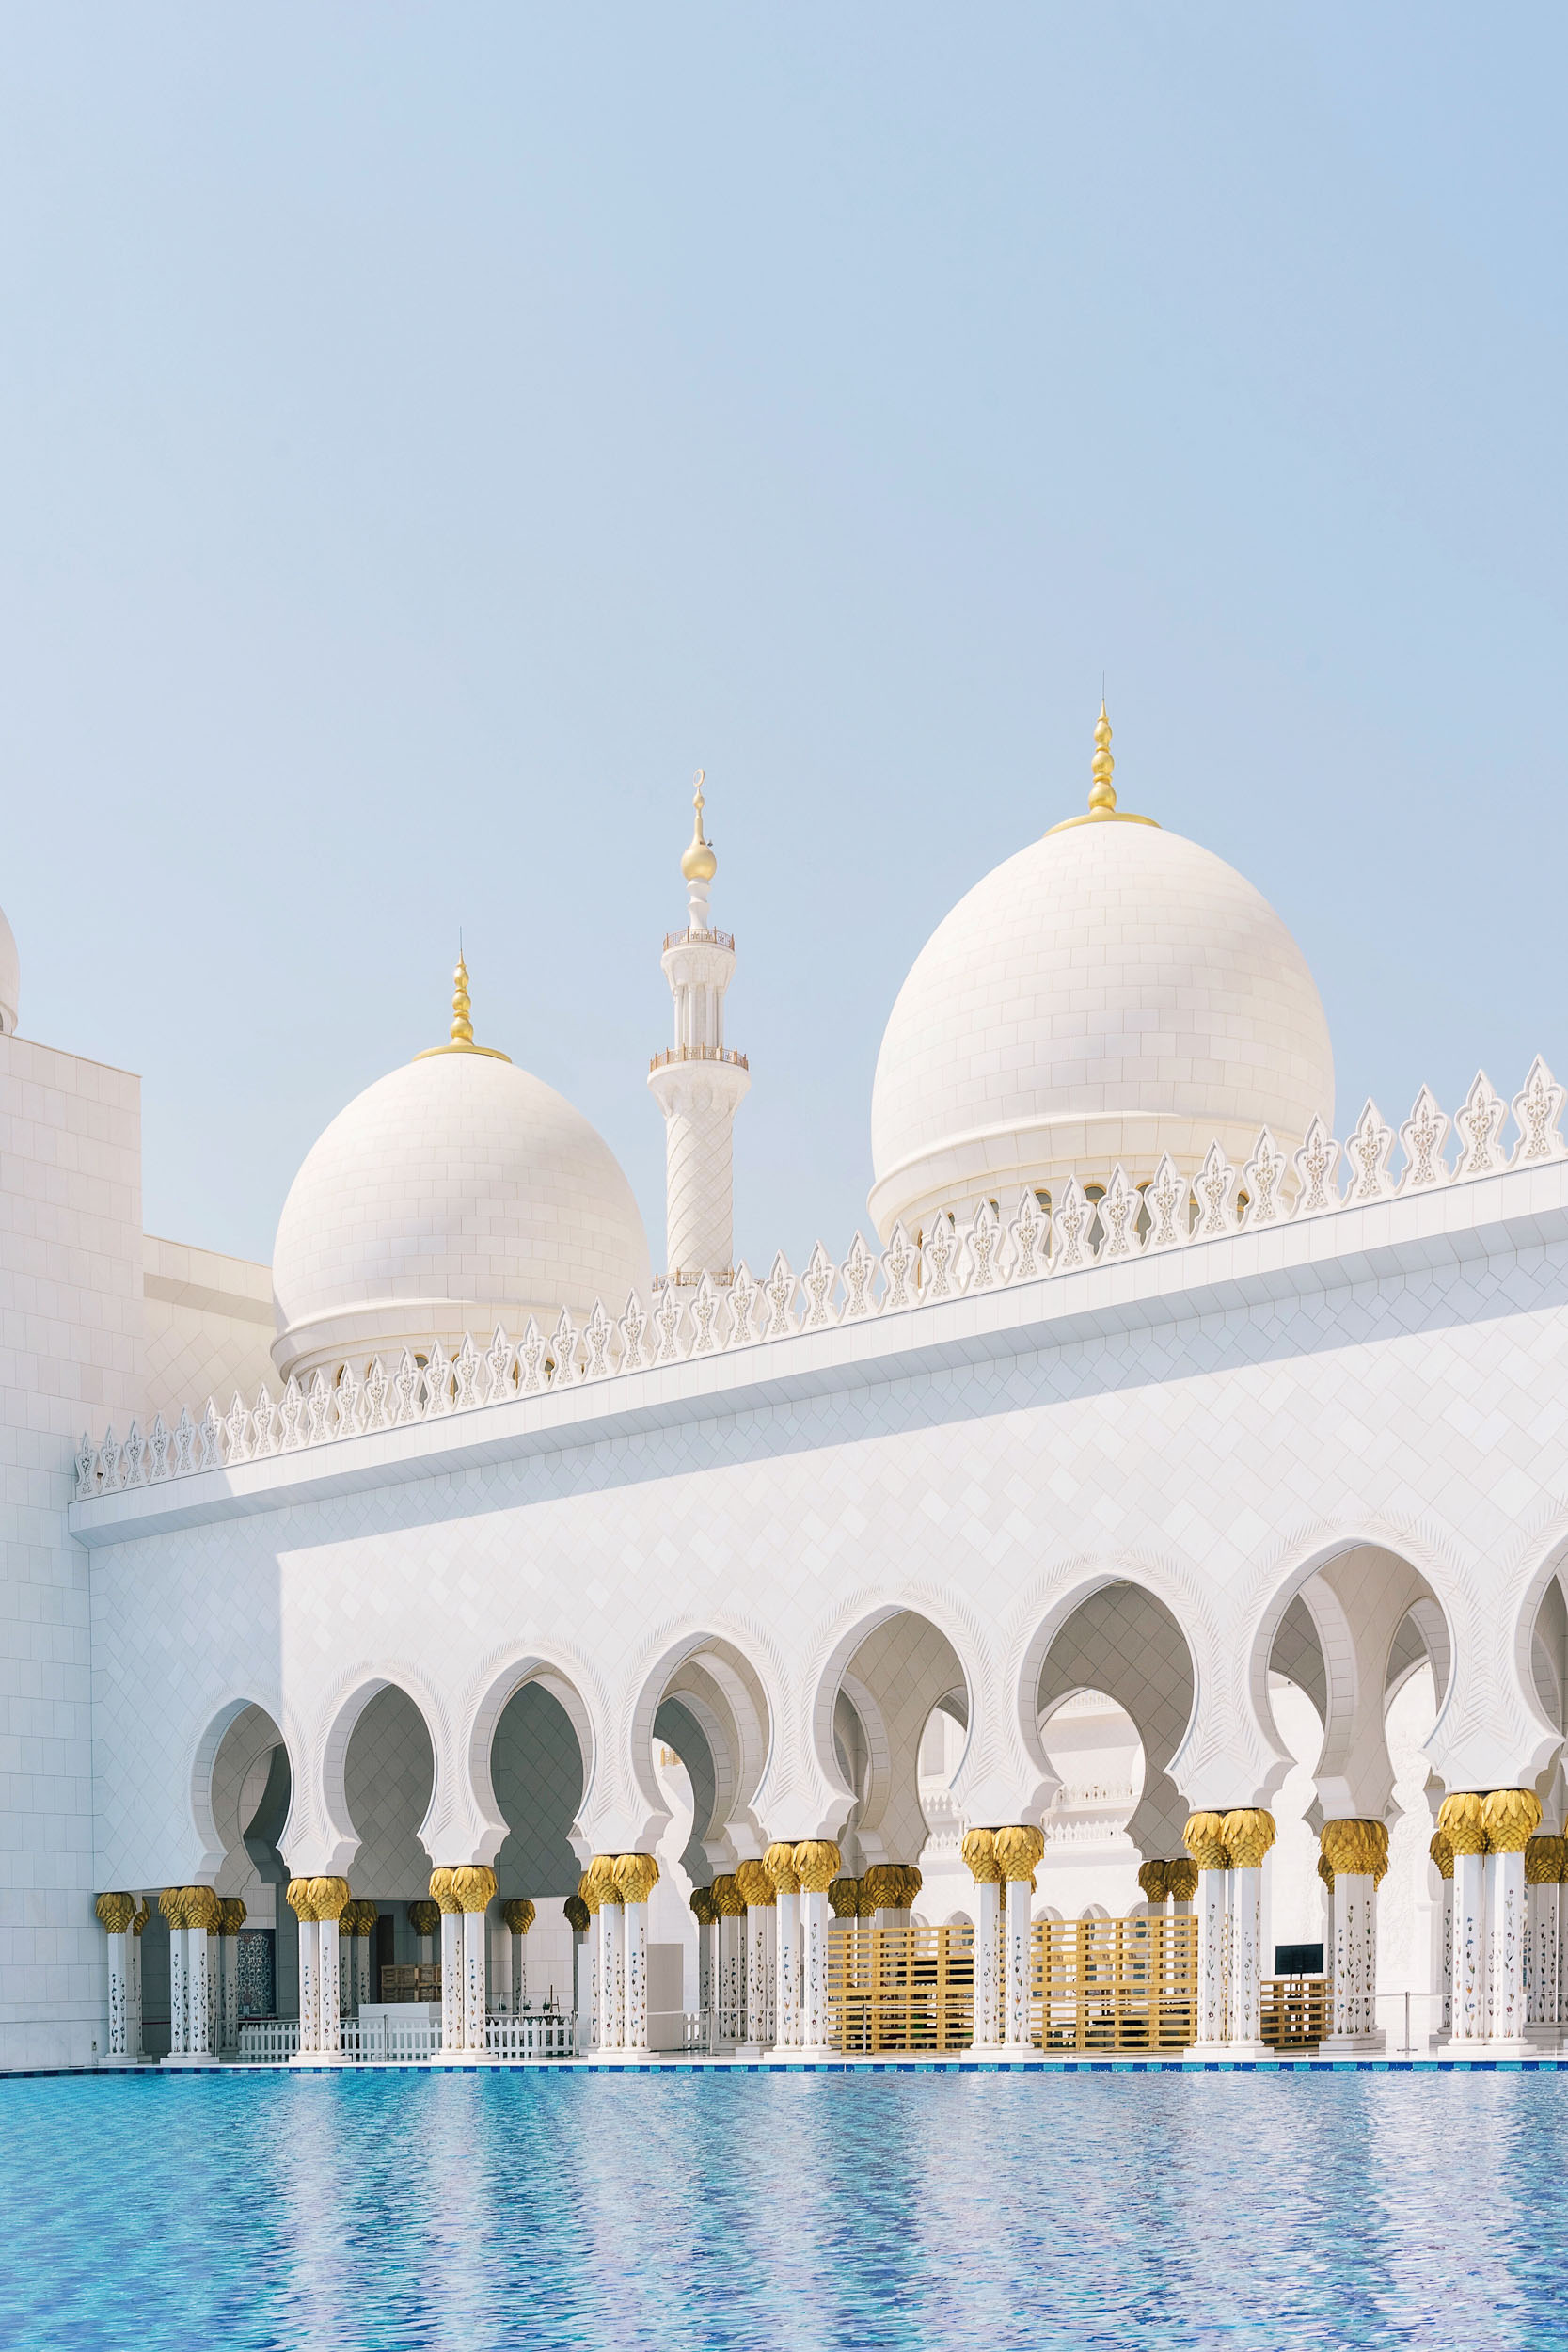 Outside the Sheikh Zayed Grand Mosque